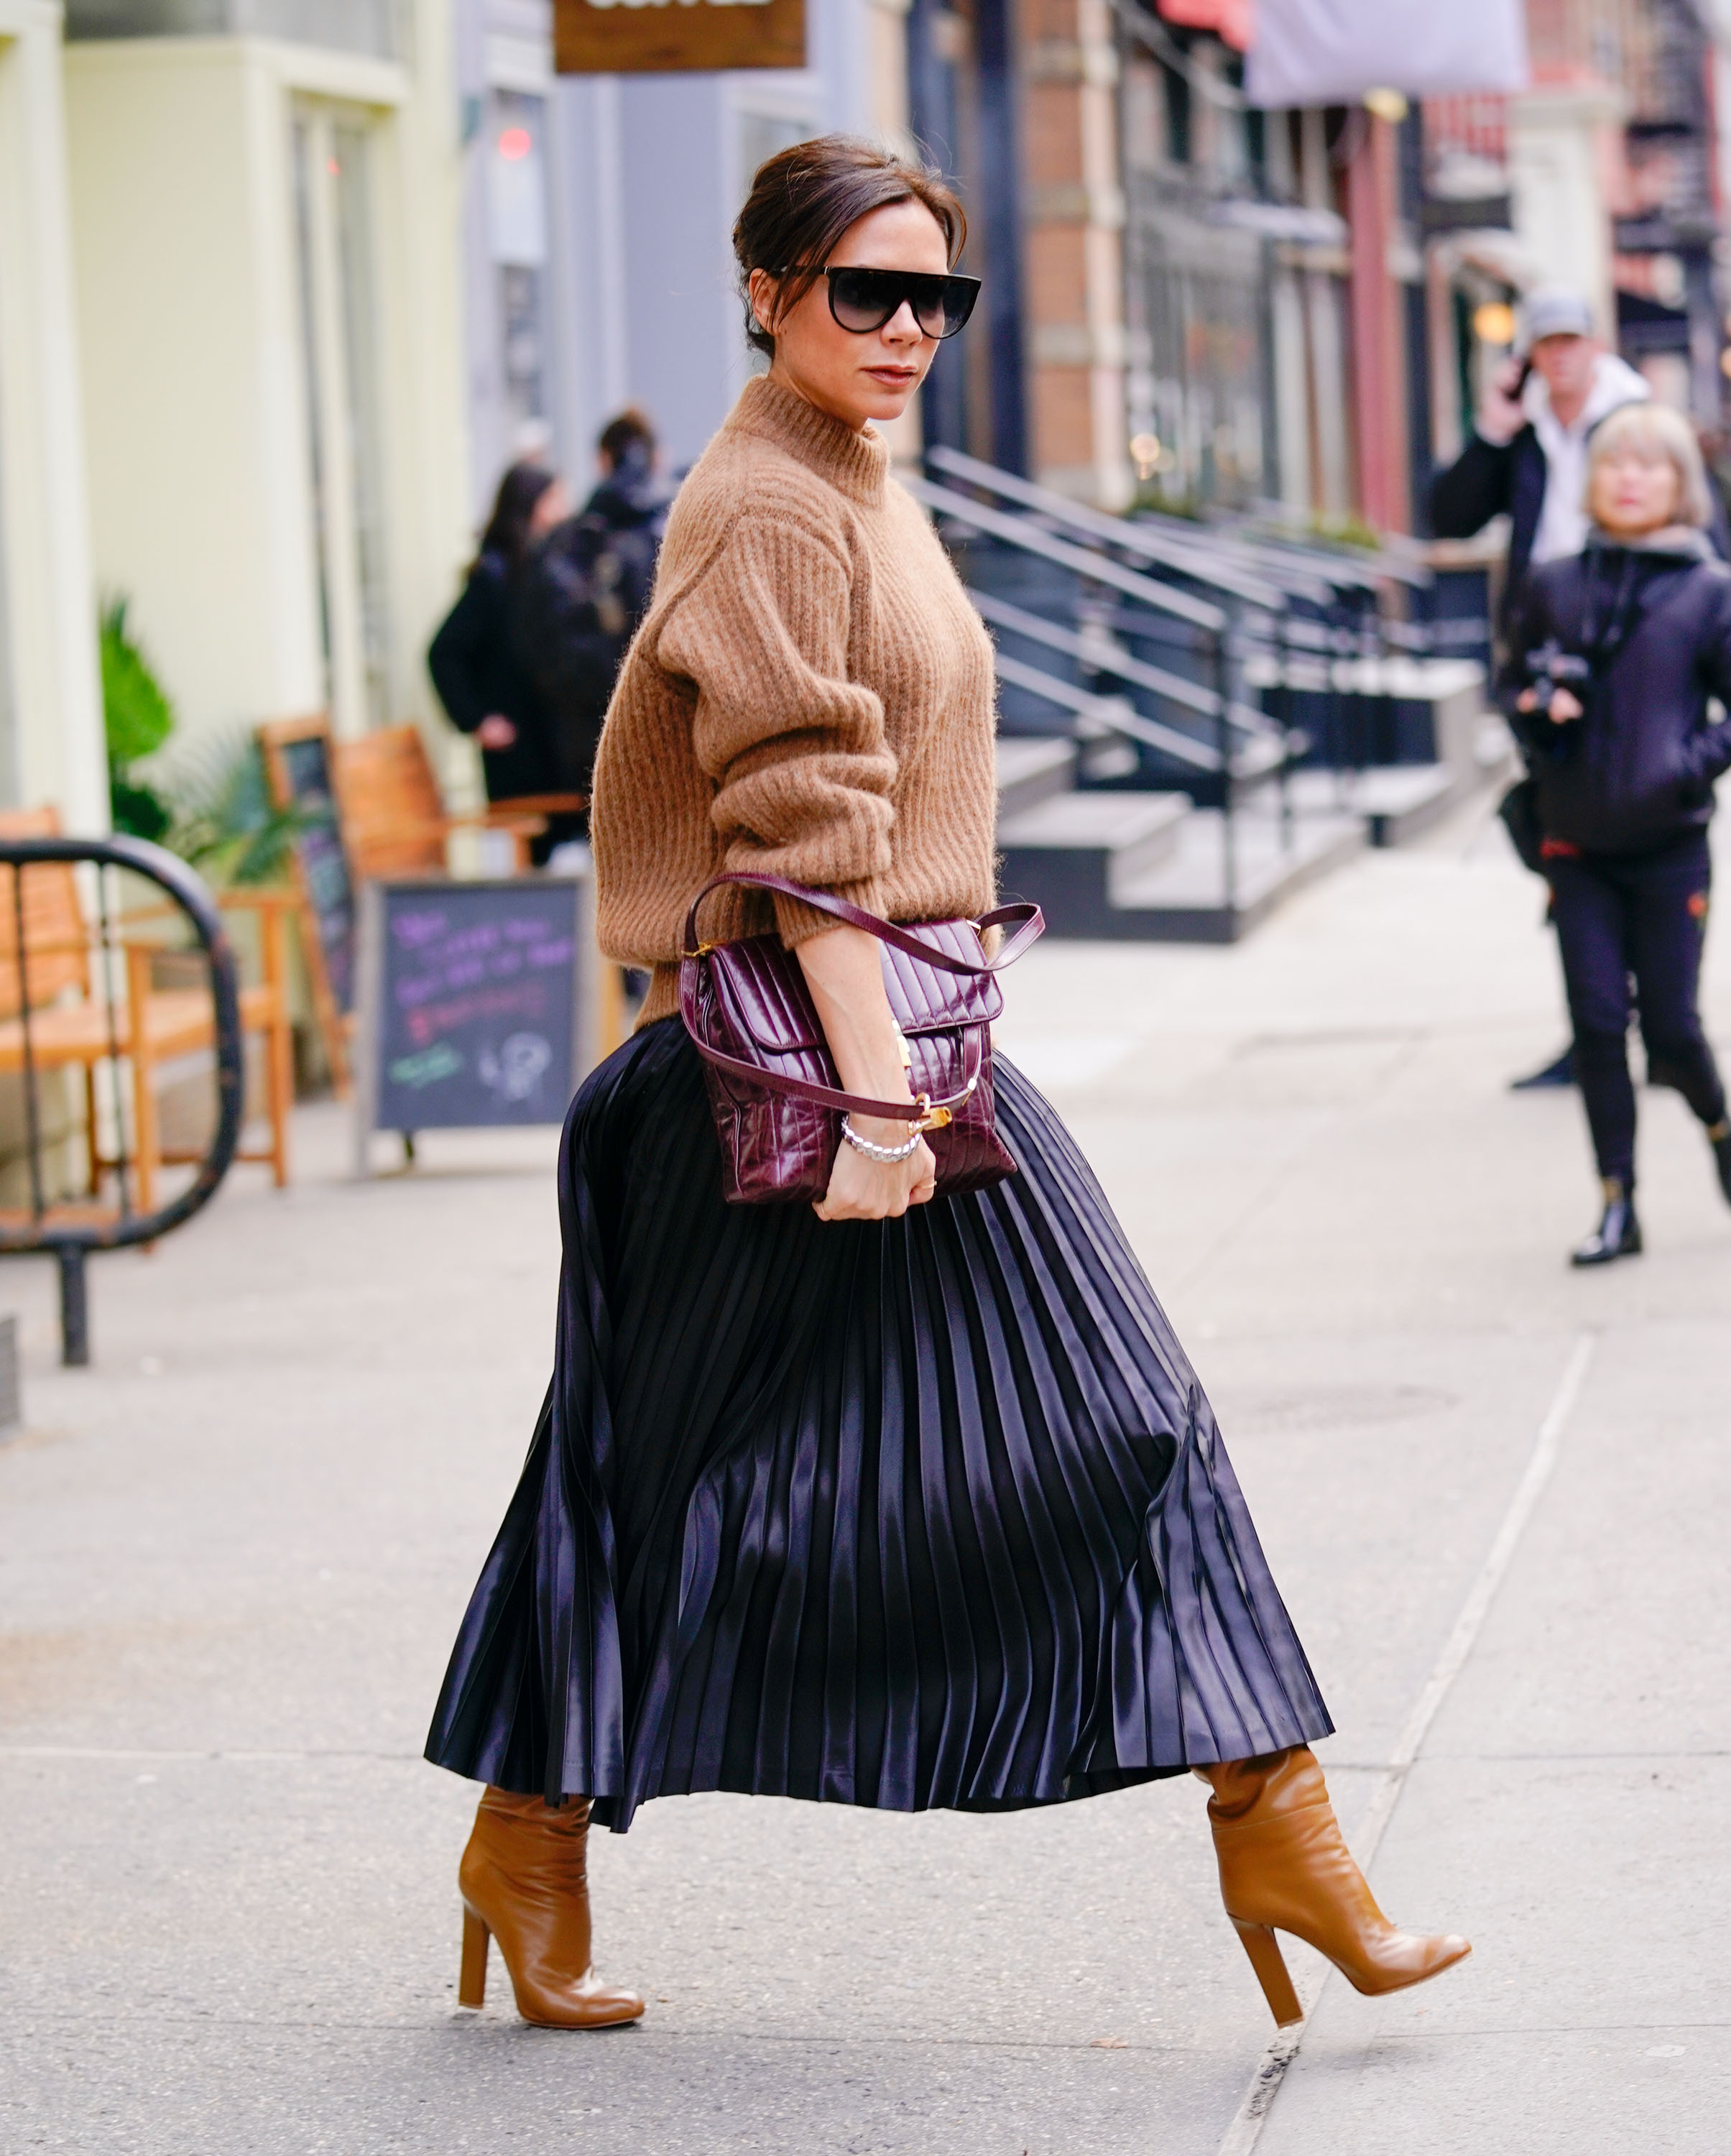 Victoria Beckham gives a look over when out and about shopping in Soho, NY <P> Pictured: Victoria Beckham <B>Ref: SPL1655126  060218  </B><BR/> Picture by: Jackson Lee  / Splash News<BR/> </P><P> <B>Splash News and Pictures</B><BR/> Los Angeles:310-821-2666<BR/> New York:212-619-2666<BR/> London:870-934-2666<BR/> <span id=